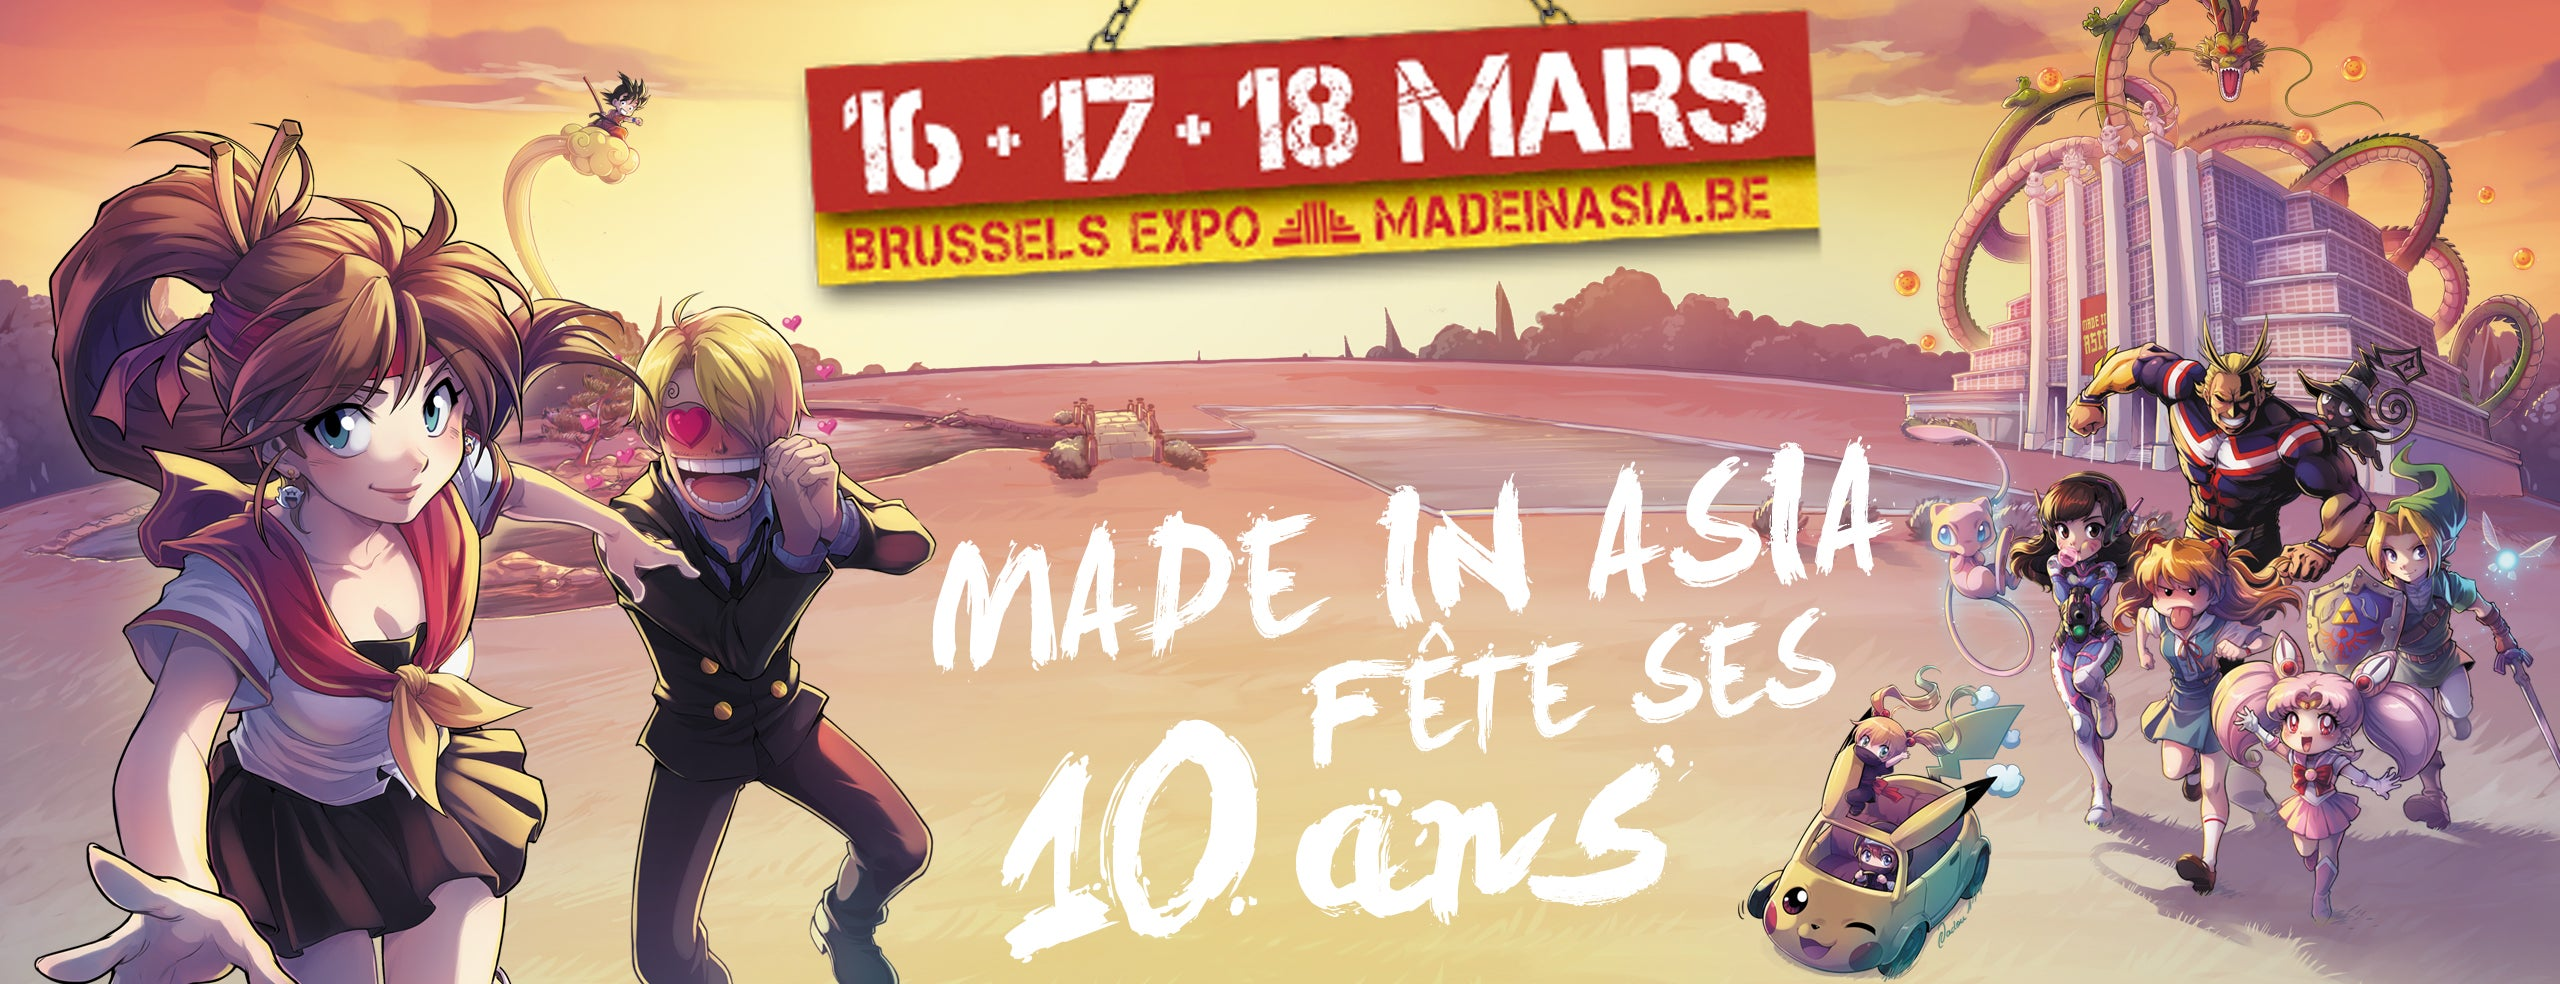 Welcome to brussels expo for Salon made in asia